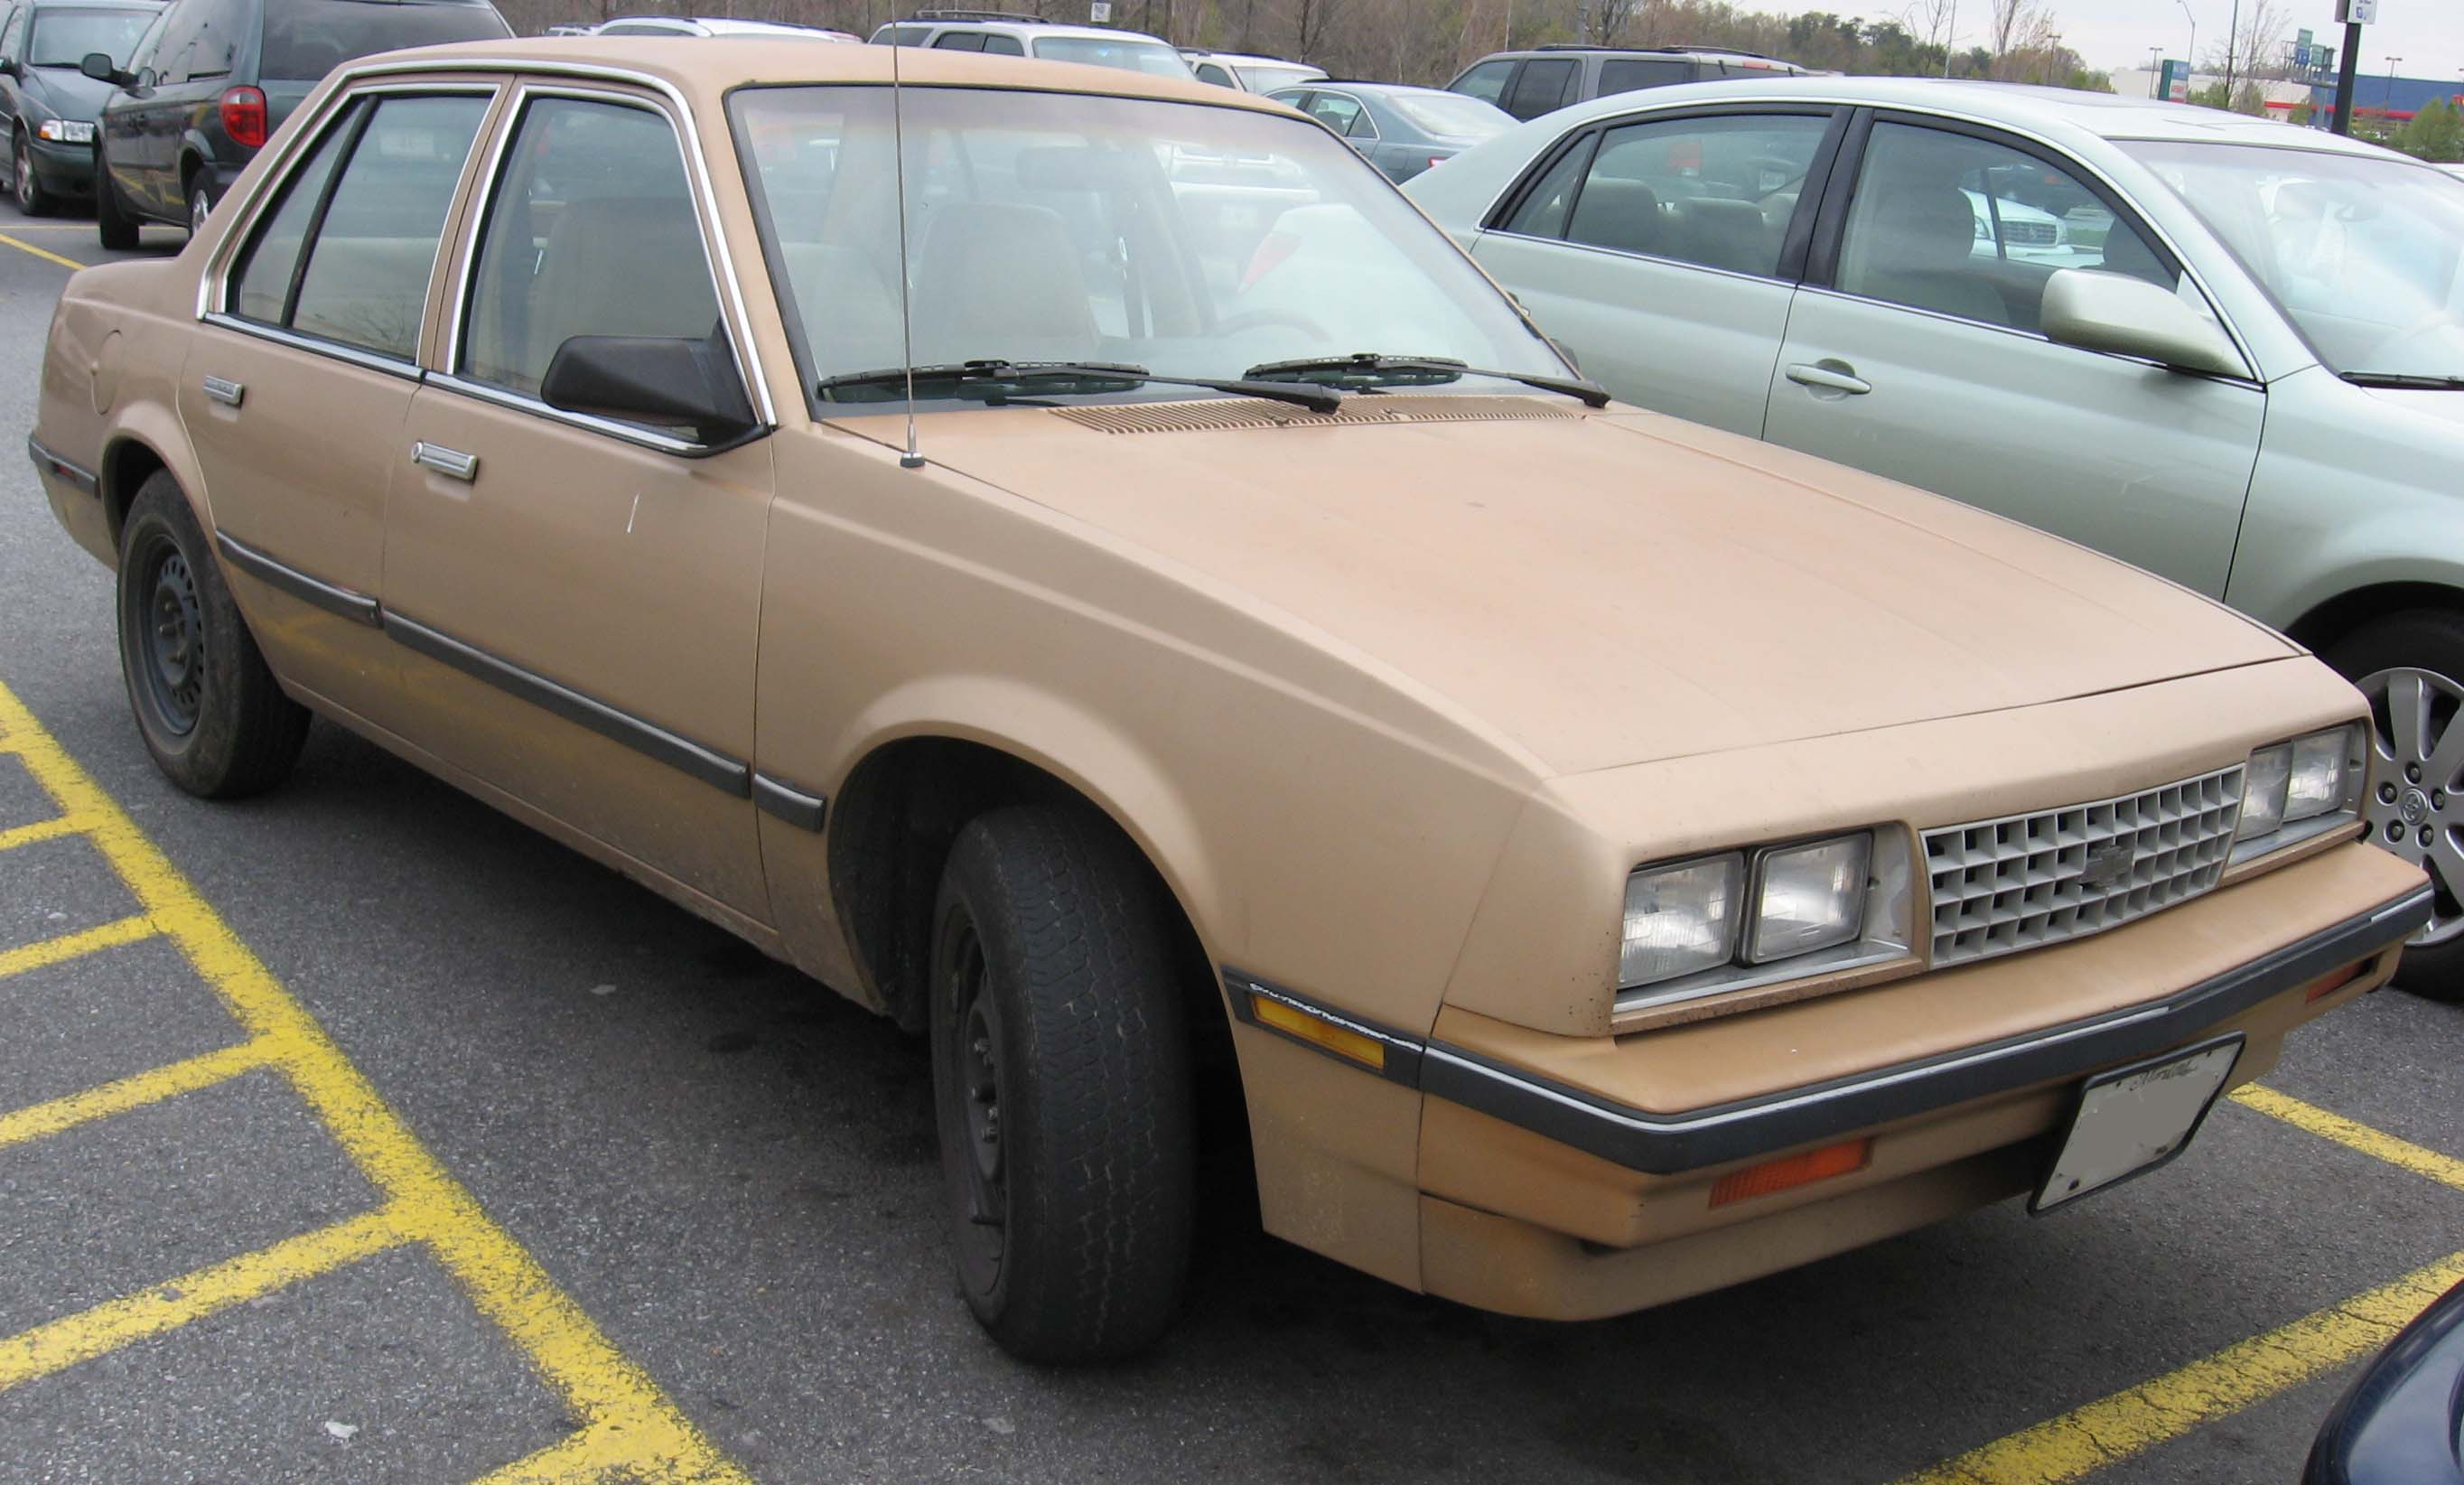 Missing cars-Page 2| Off-Topic Discussion forum